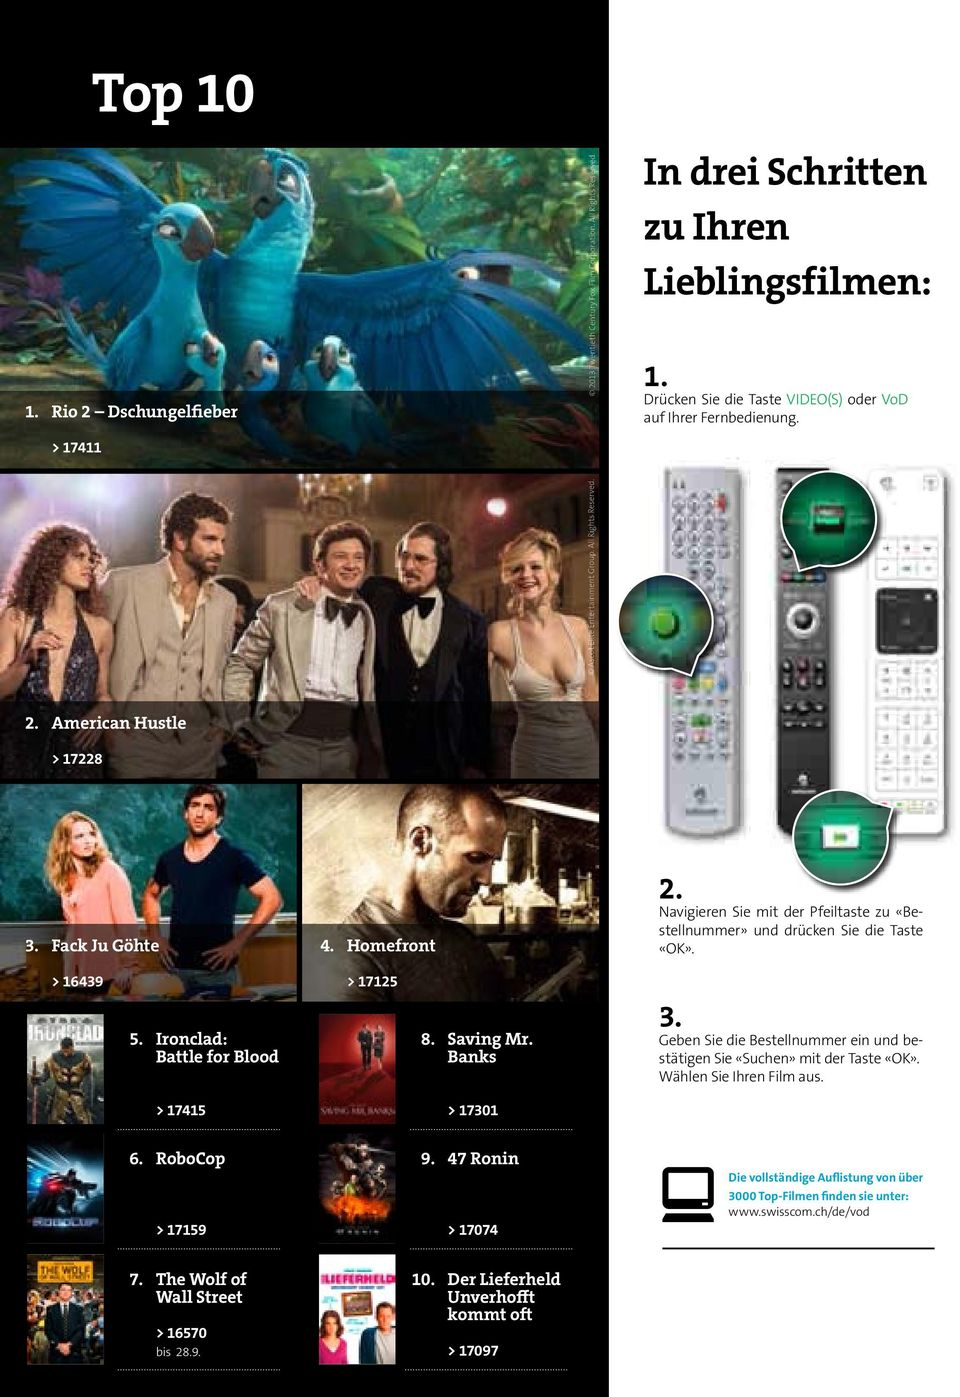 Navigieren Sie mit der Pfeiltaste zu «Bestellnummer» und drücken Sie die Taste «OK». > 16439 5. Ironclad: Battle for Blood > 17125 8. Saving Mr. Banks 3.